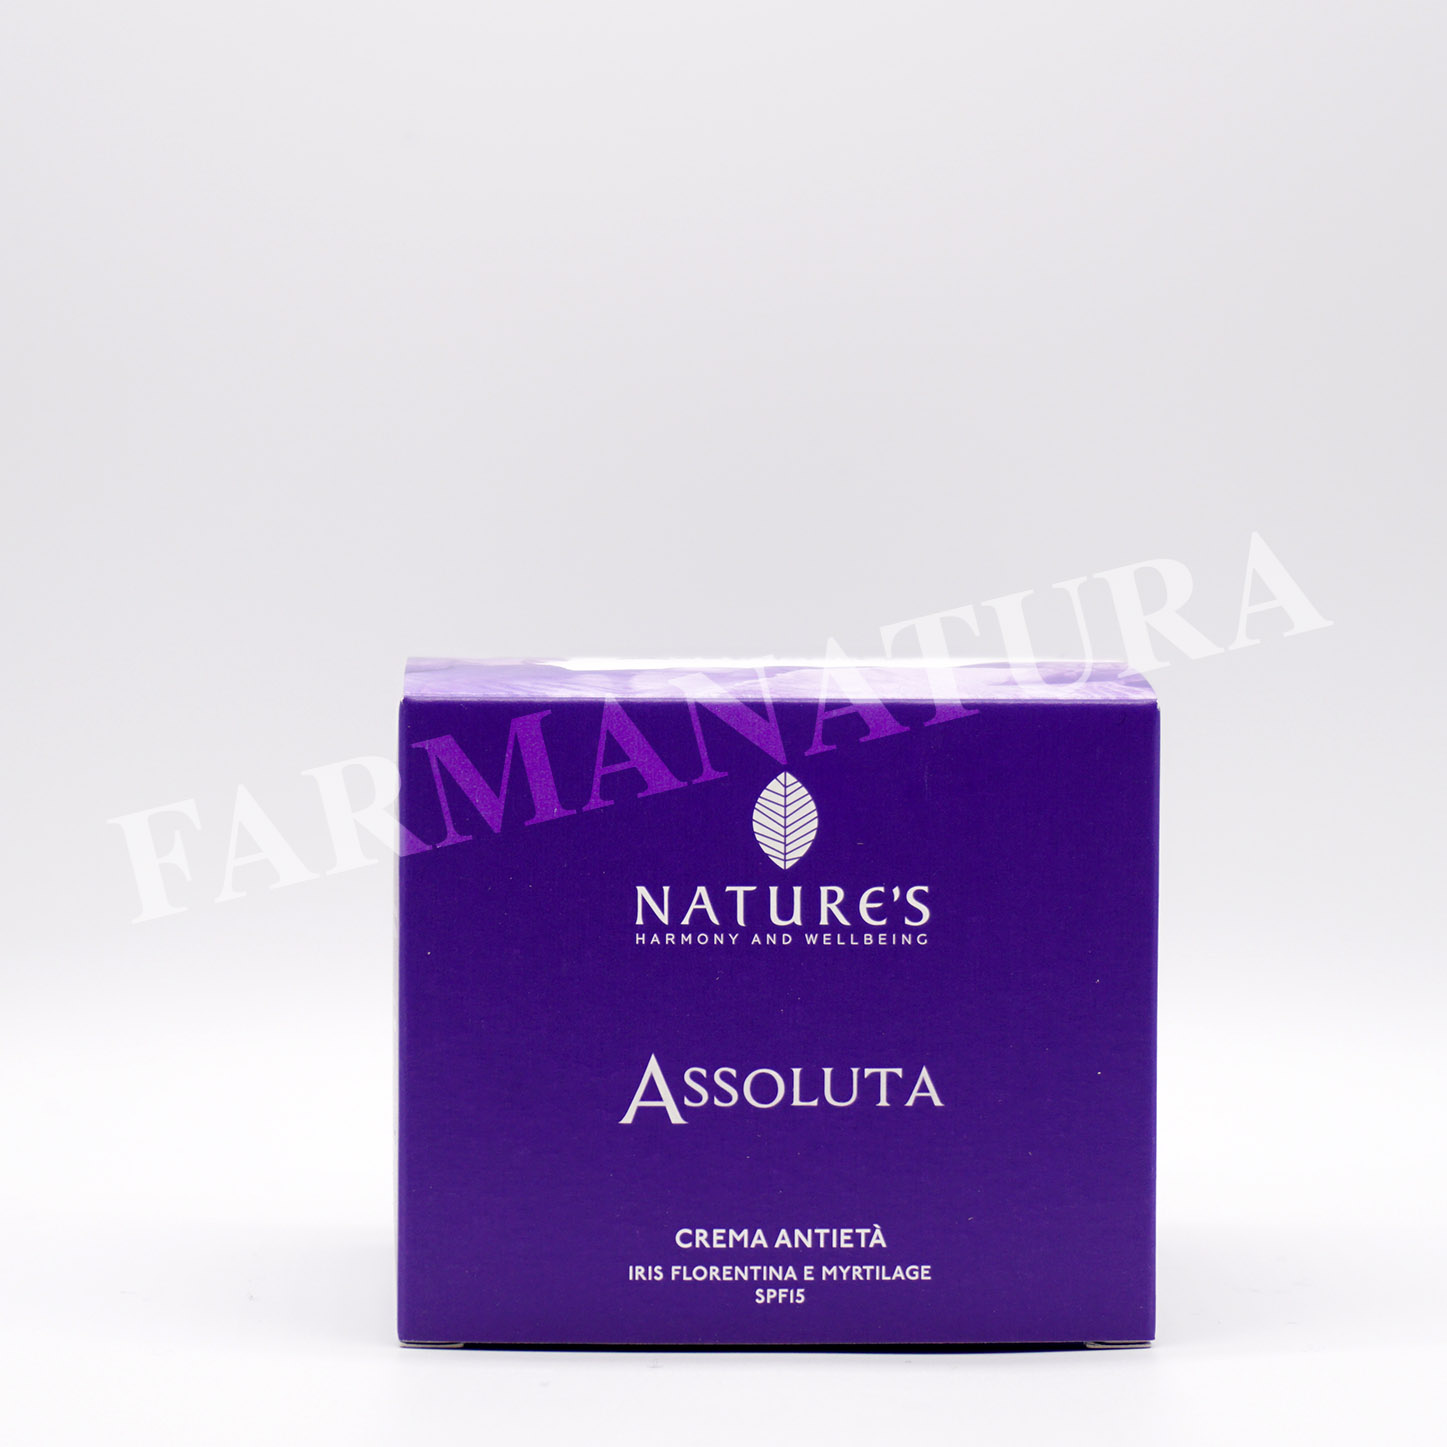 Assoluta Cr Viso Antieta' 50 Ml Nature'S